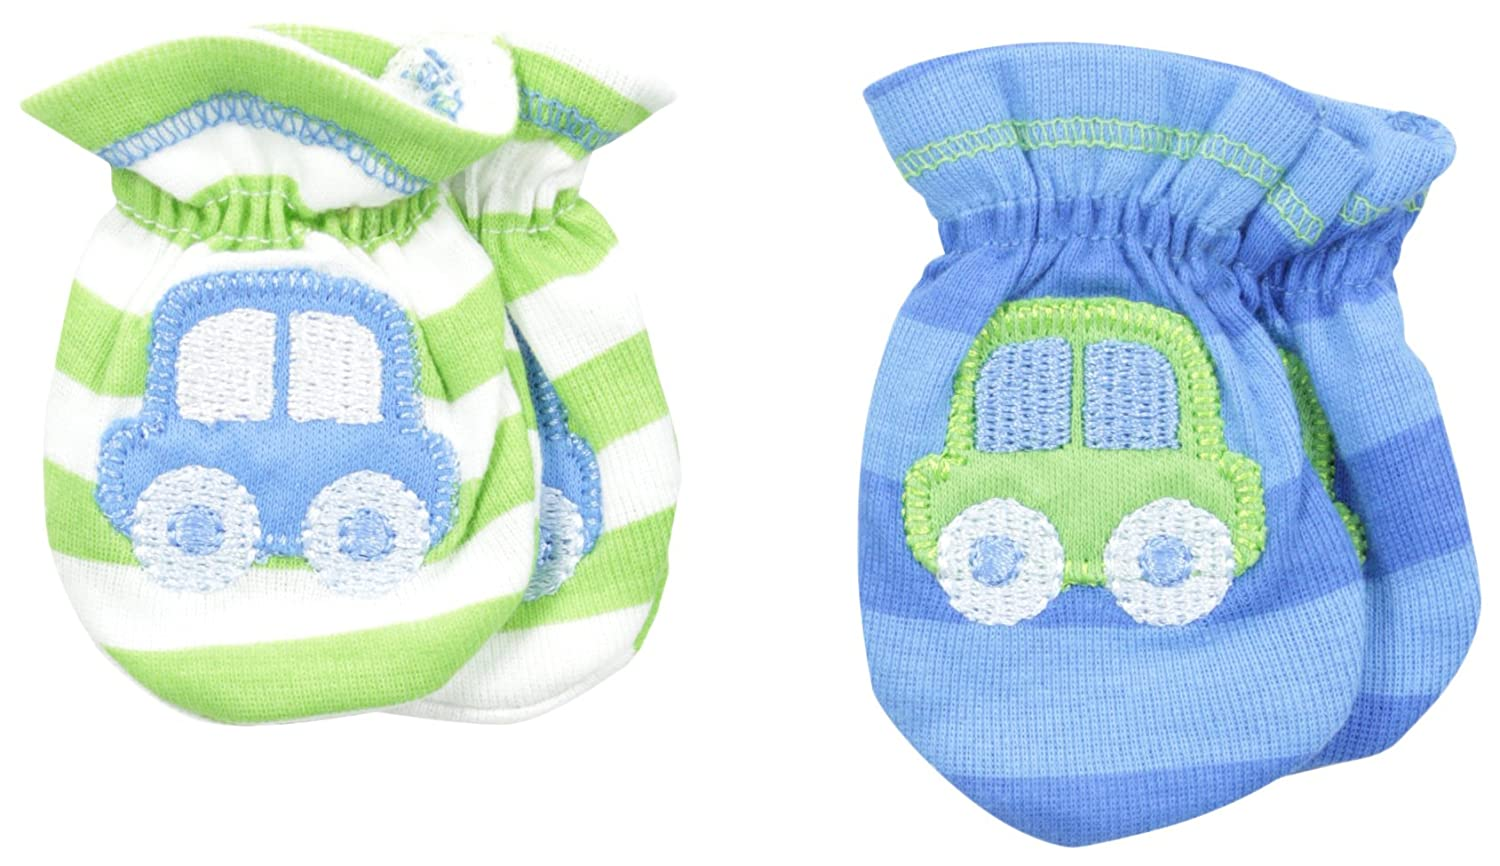 Gerber Baby Boys' Car-Themed 2 Pack Mittens Blue 0-3 Months Gerber Children's Apparel 81857216AB1503I